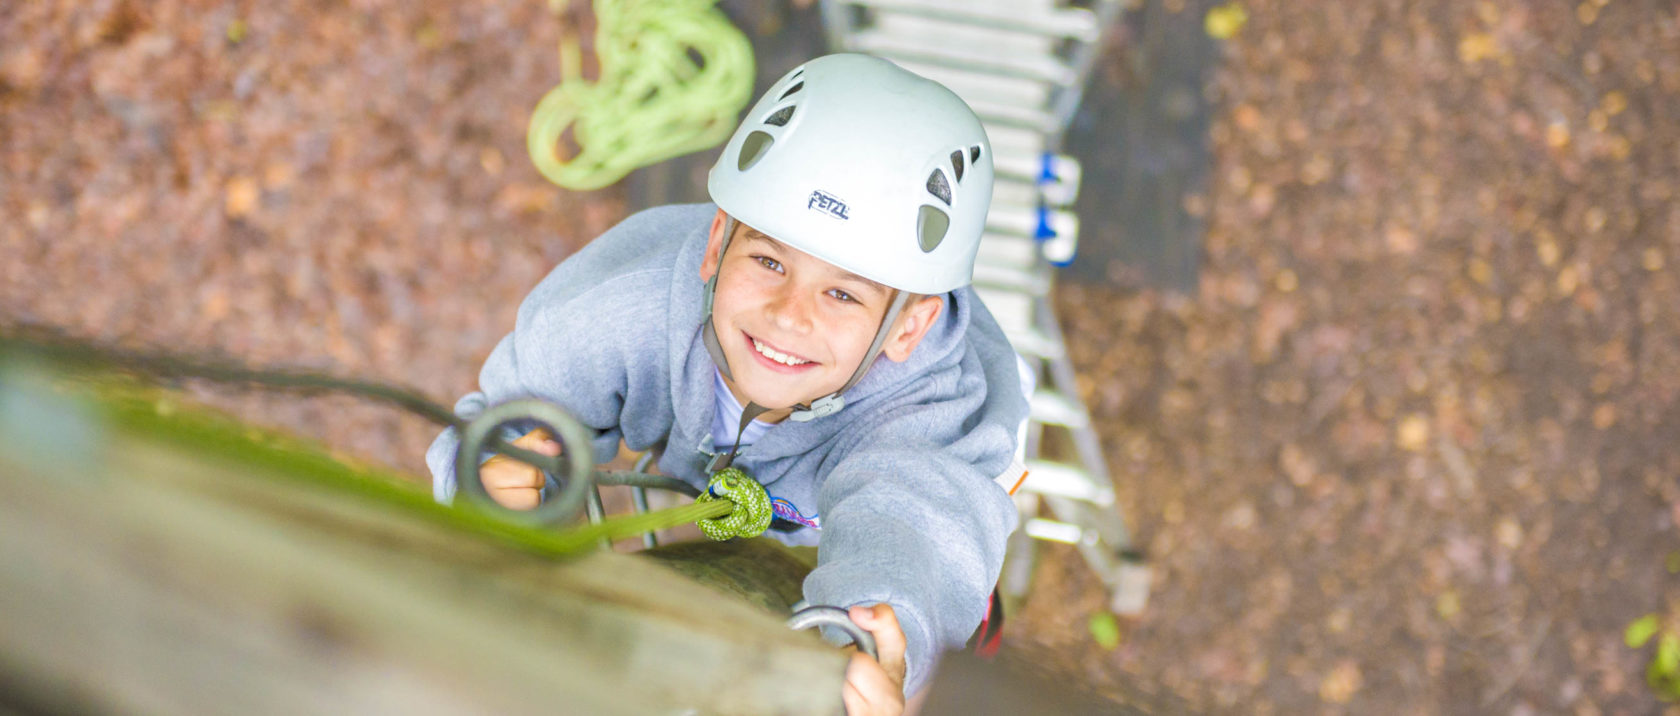 Boy camper climbing a pole on the ropes course